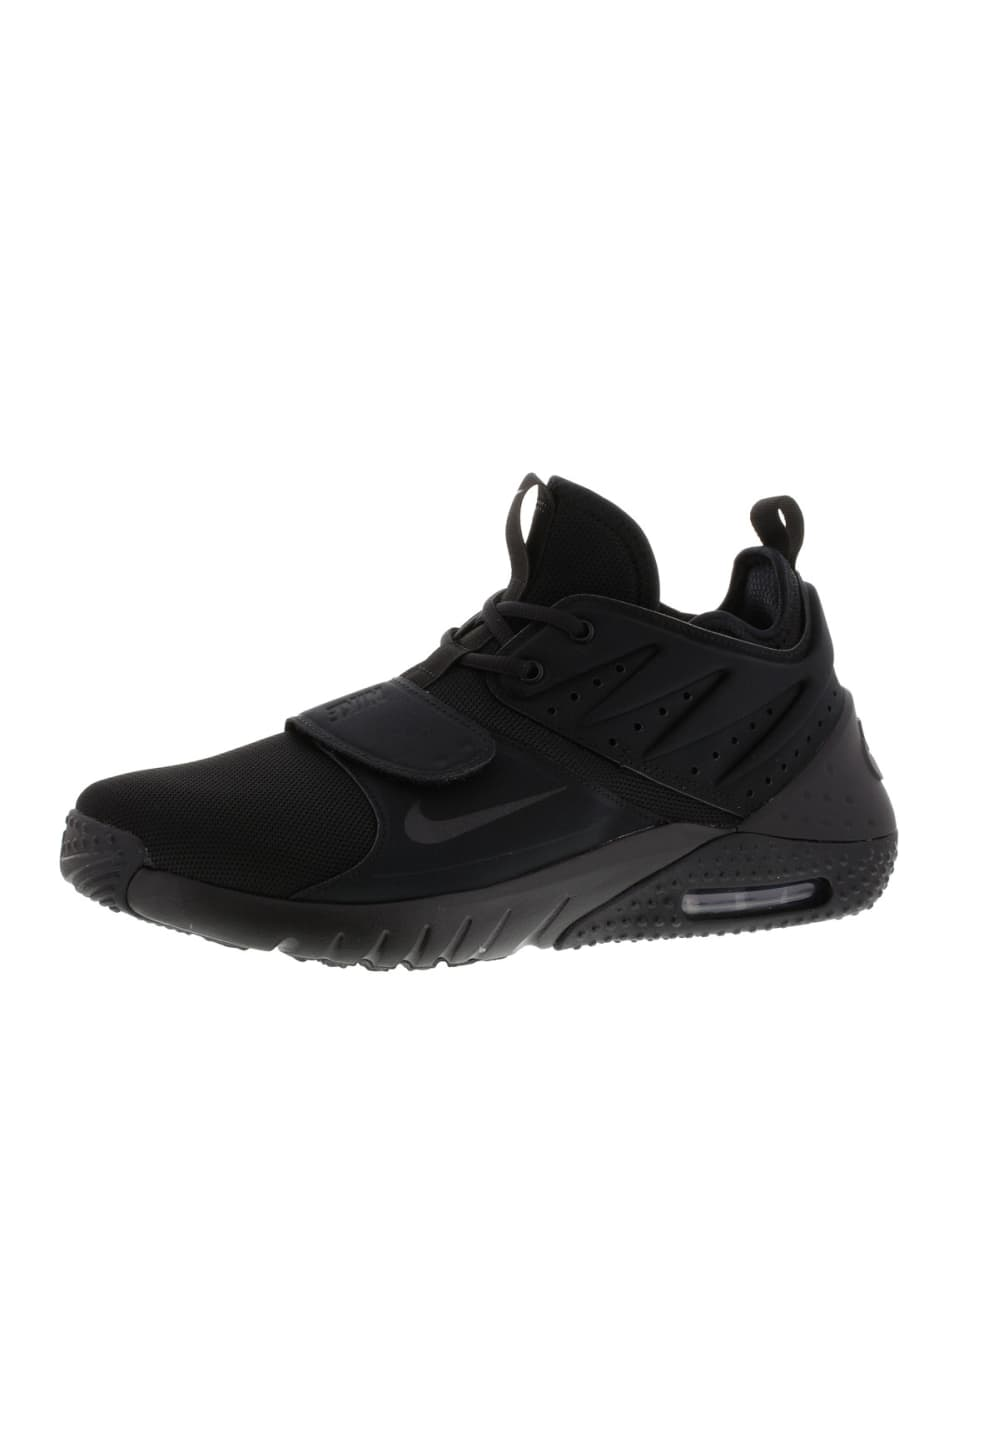 buy online 236d7 5f5b7 Next. Nike. Air Max Trainer 1 - Fitness shoes for Men